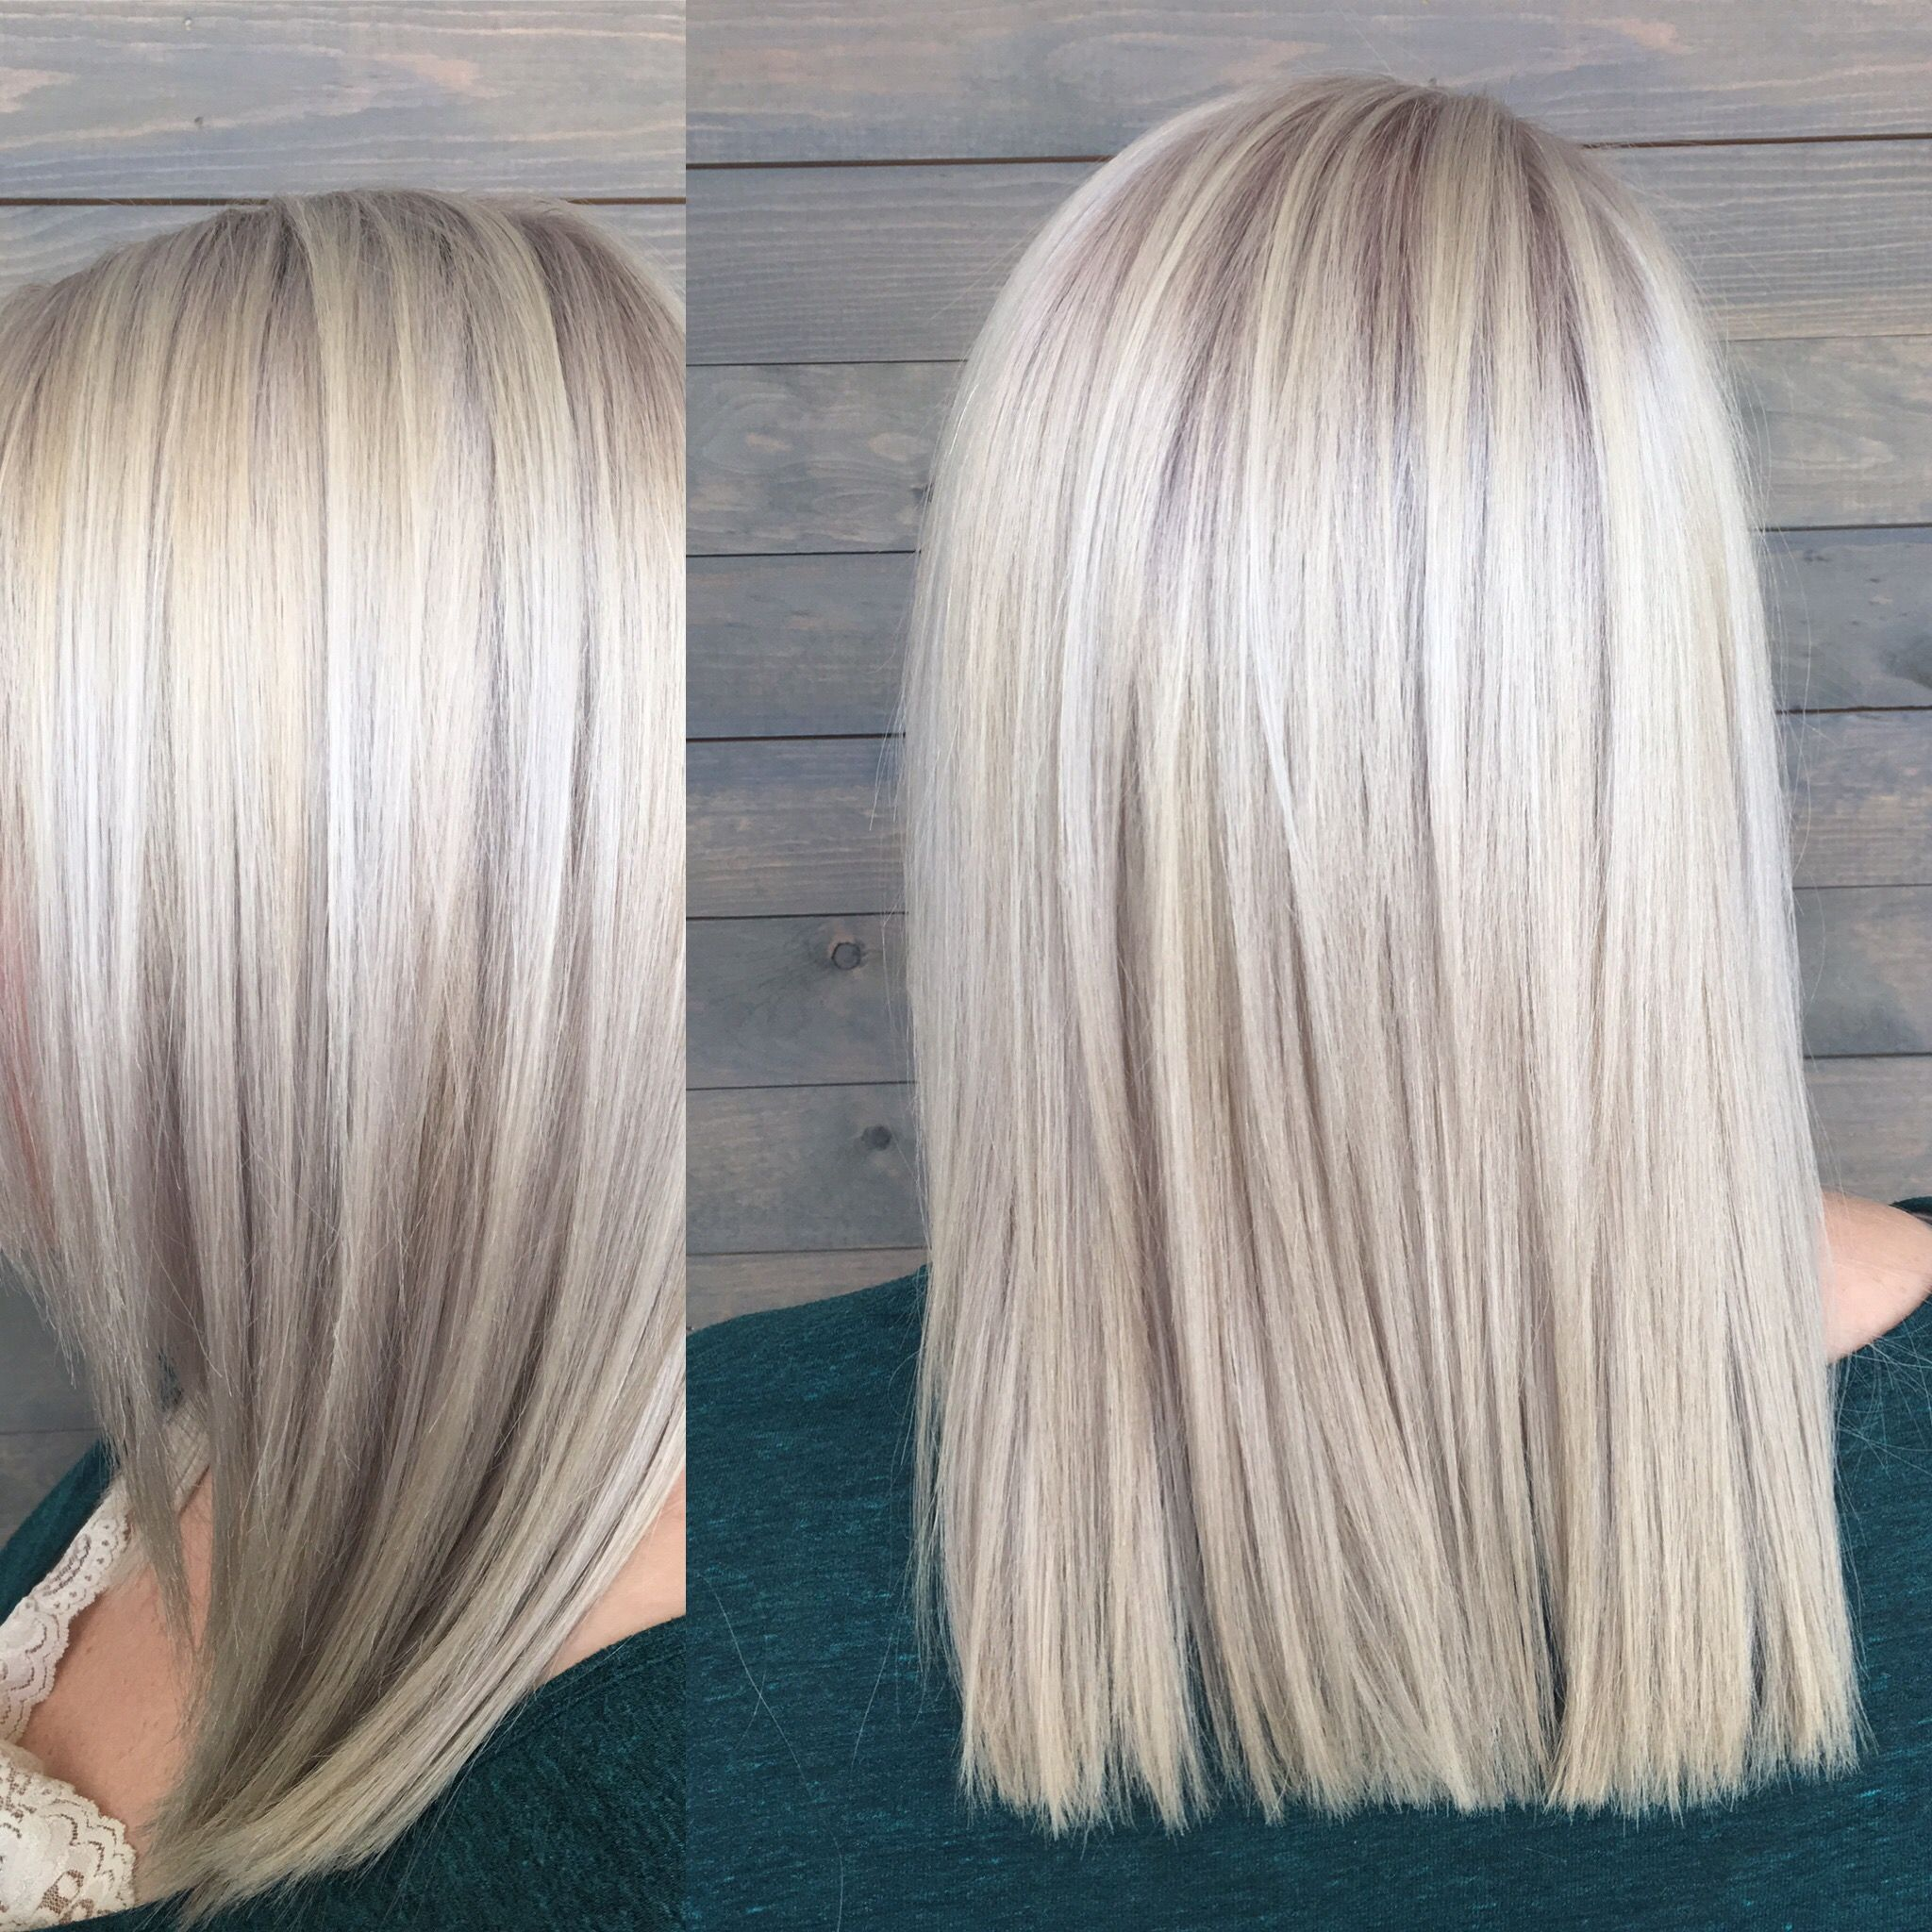 Platinum blonde done by Hunter Halverson at Image Studios in South Jordan, UT